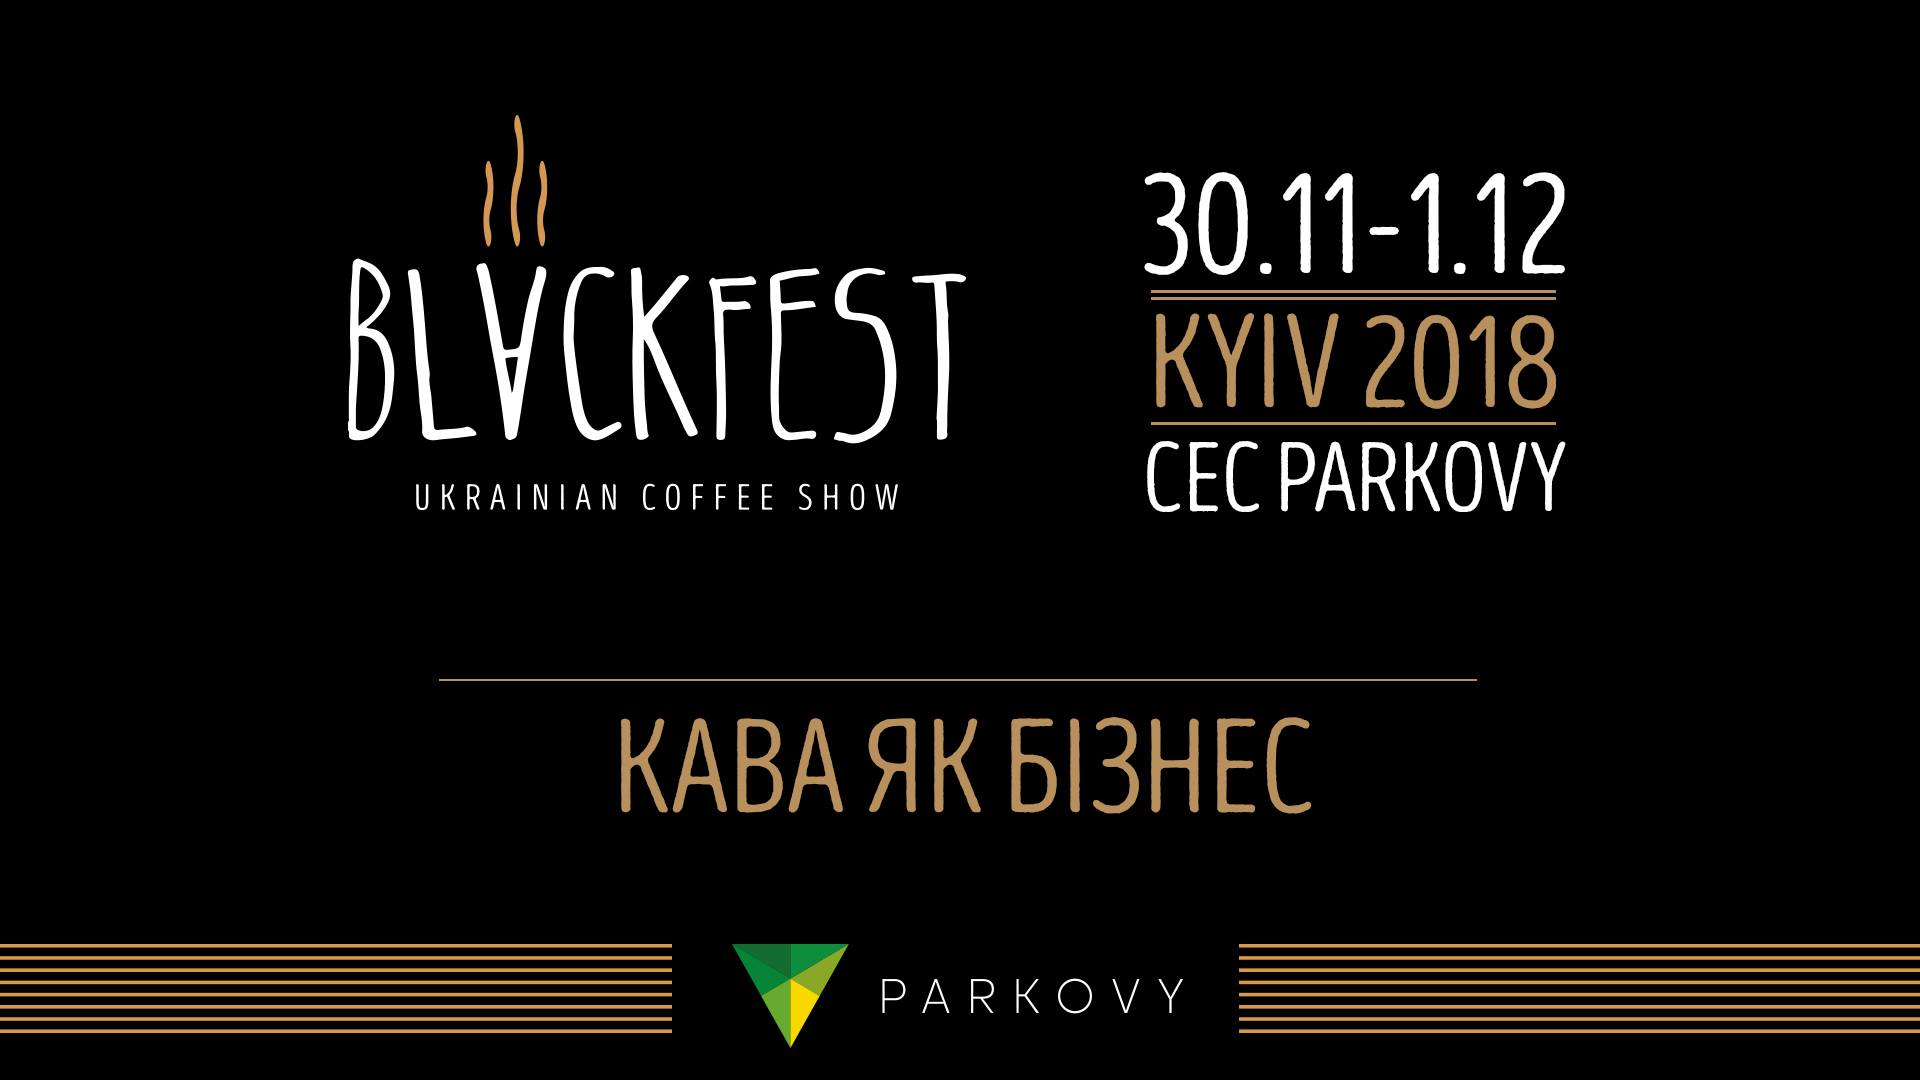 Blackfest Ukrainian Coffee Show